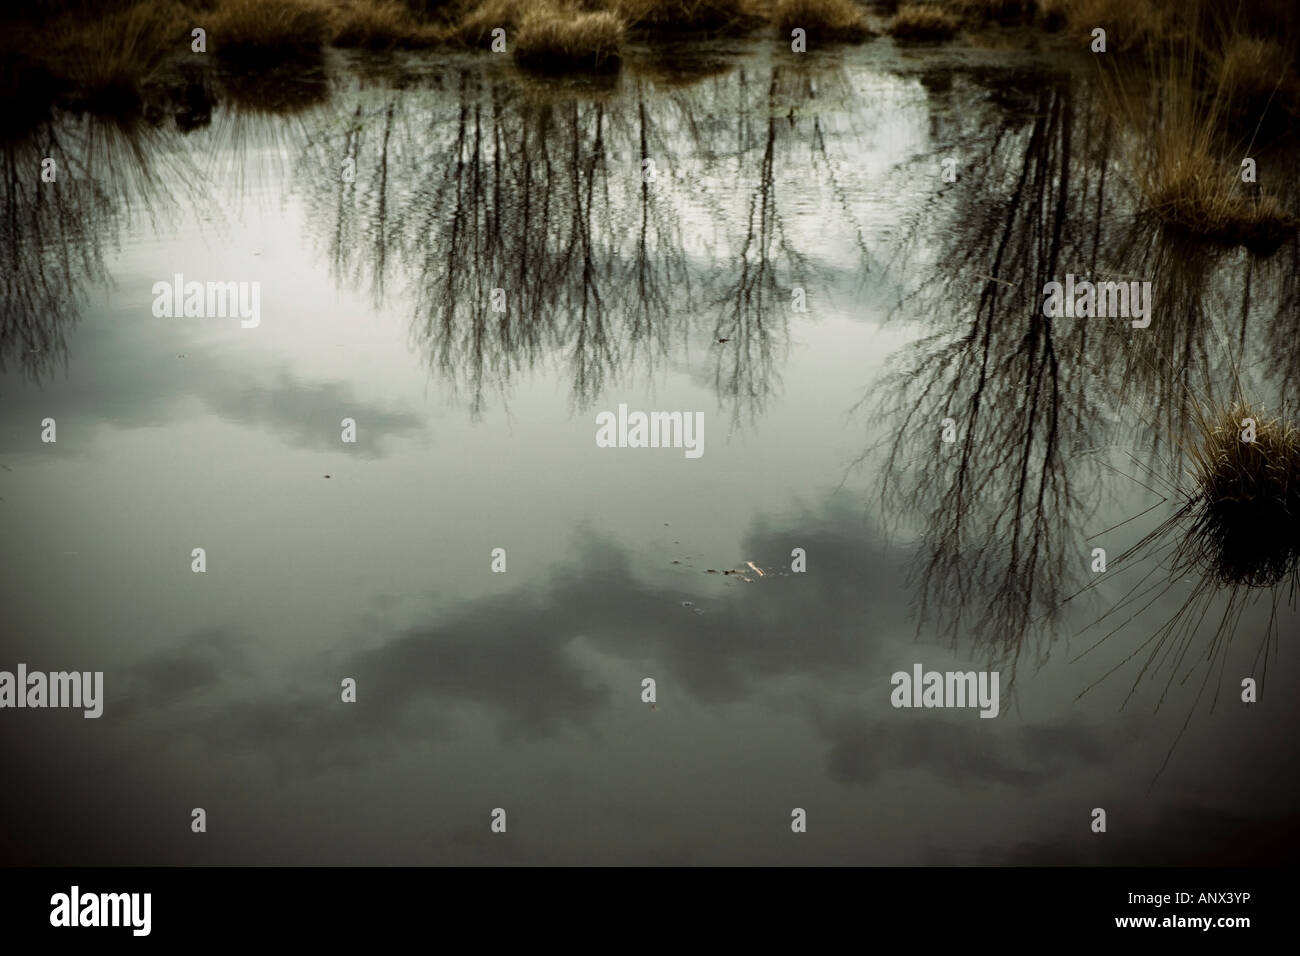 Refections on a wildlife pond in England - Stock Image